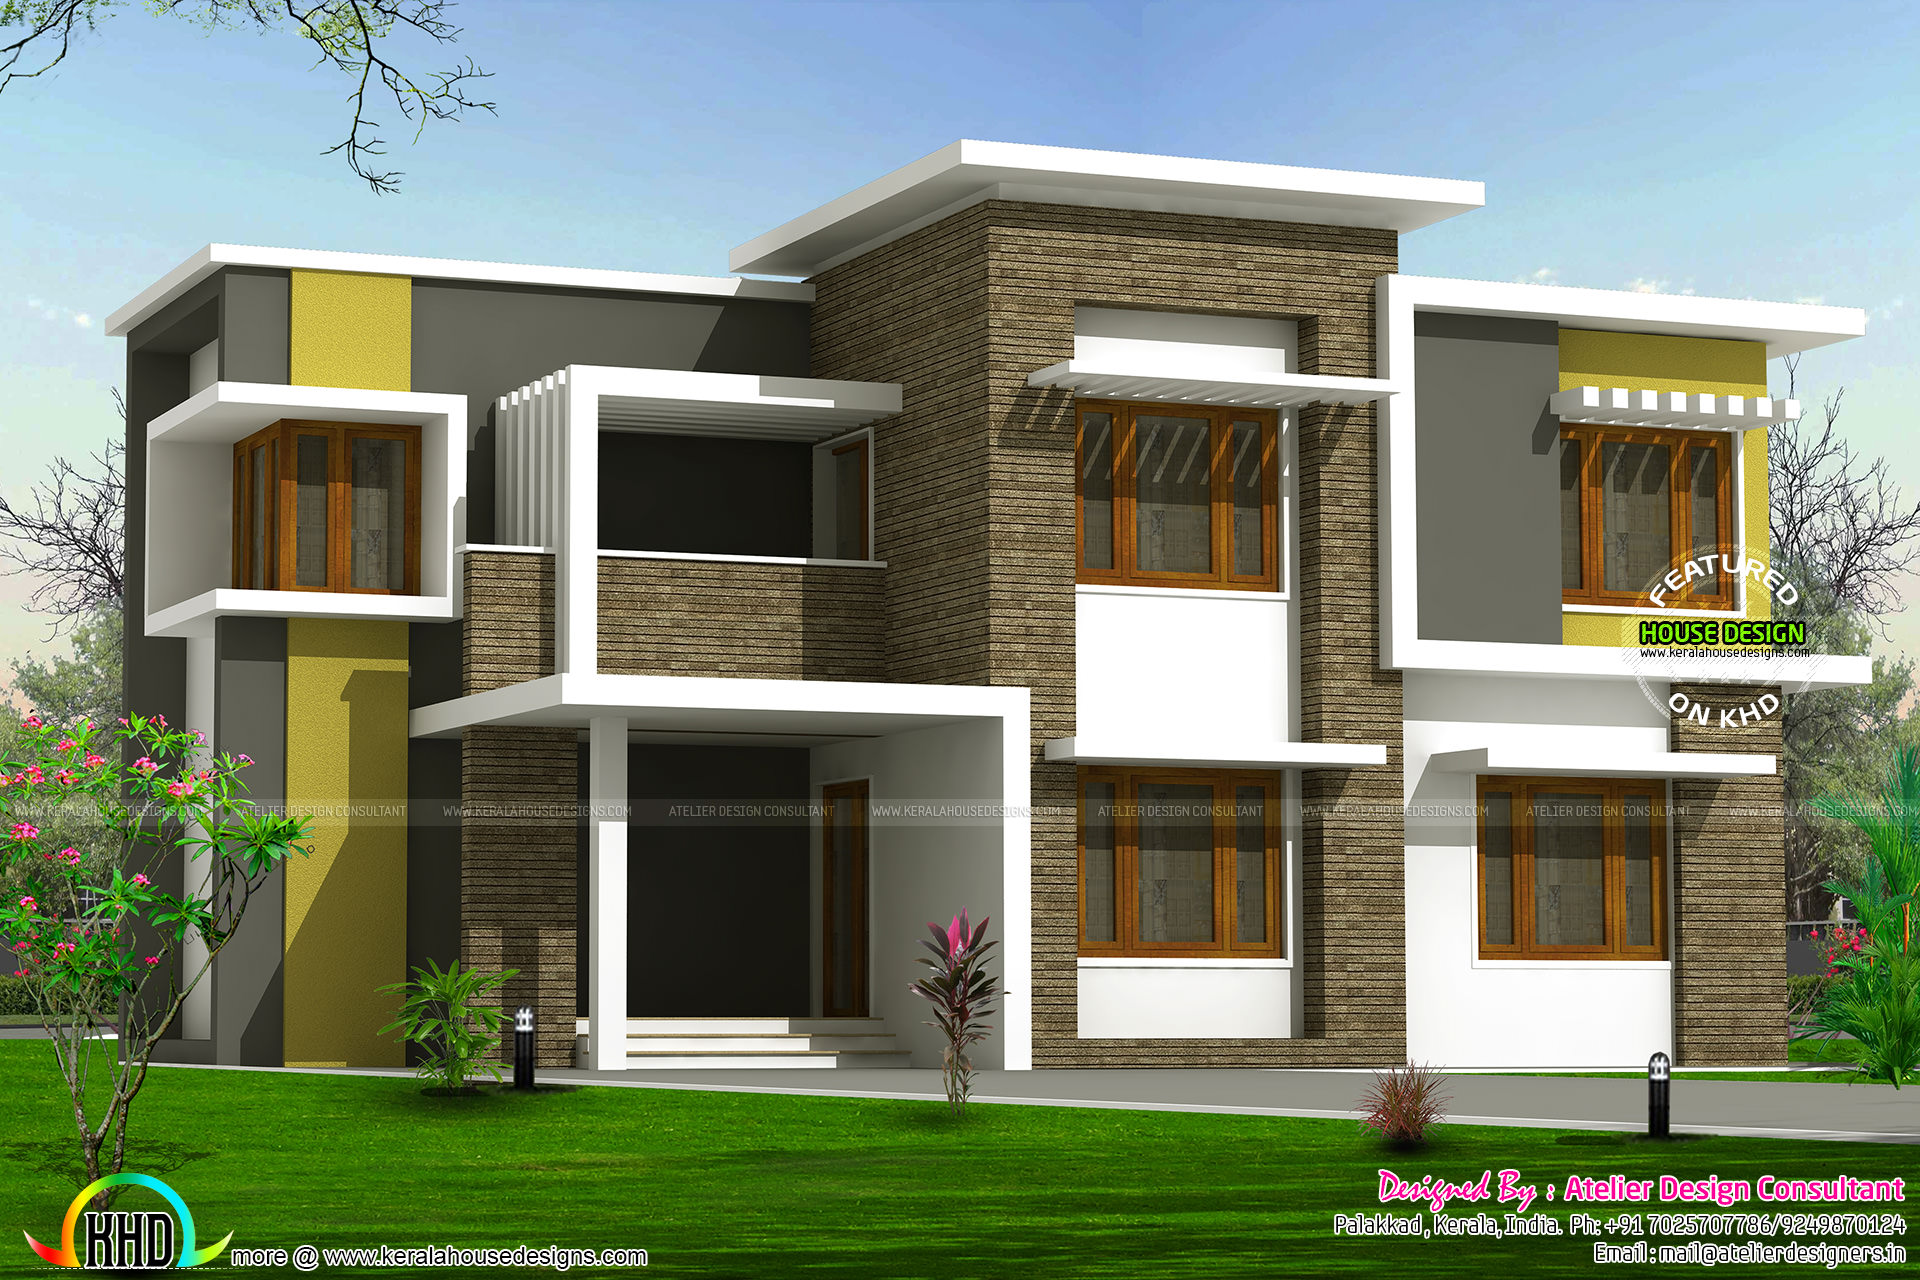 2300 sq ft box type home kerala home design and floor plans for Home design images modern